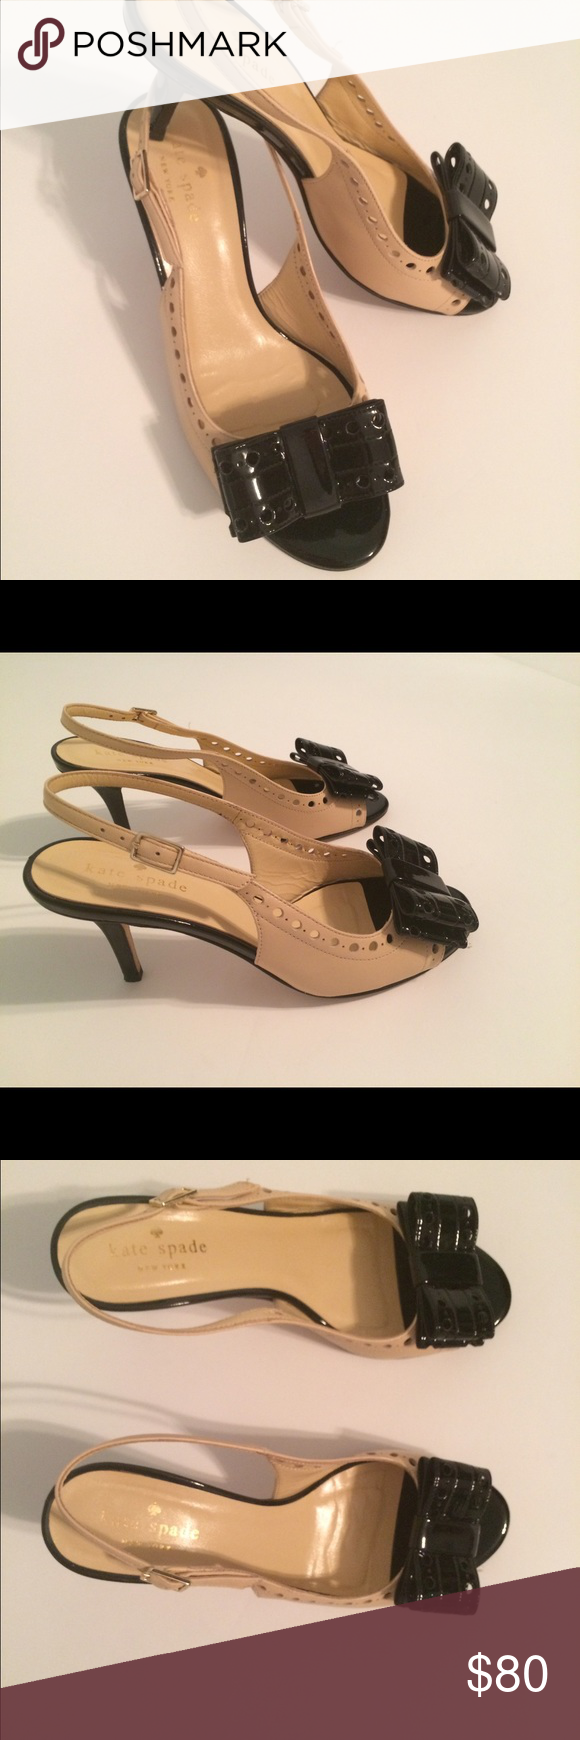 Kate Spade Bow Front Peep Toe Black Tan Heel This listing is for a pair of mint condition (worn twice-no scuffs) pair of Kate Spade peep toe heels with a approx 2.5 inch heel. Patent leather black trim and heel with beige kid leather upper. No dust bag or box. Contact seller for more questions! :-) not a reposh -original owner. Kate Spade Shoes Heels